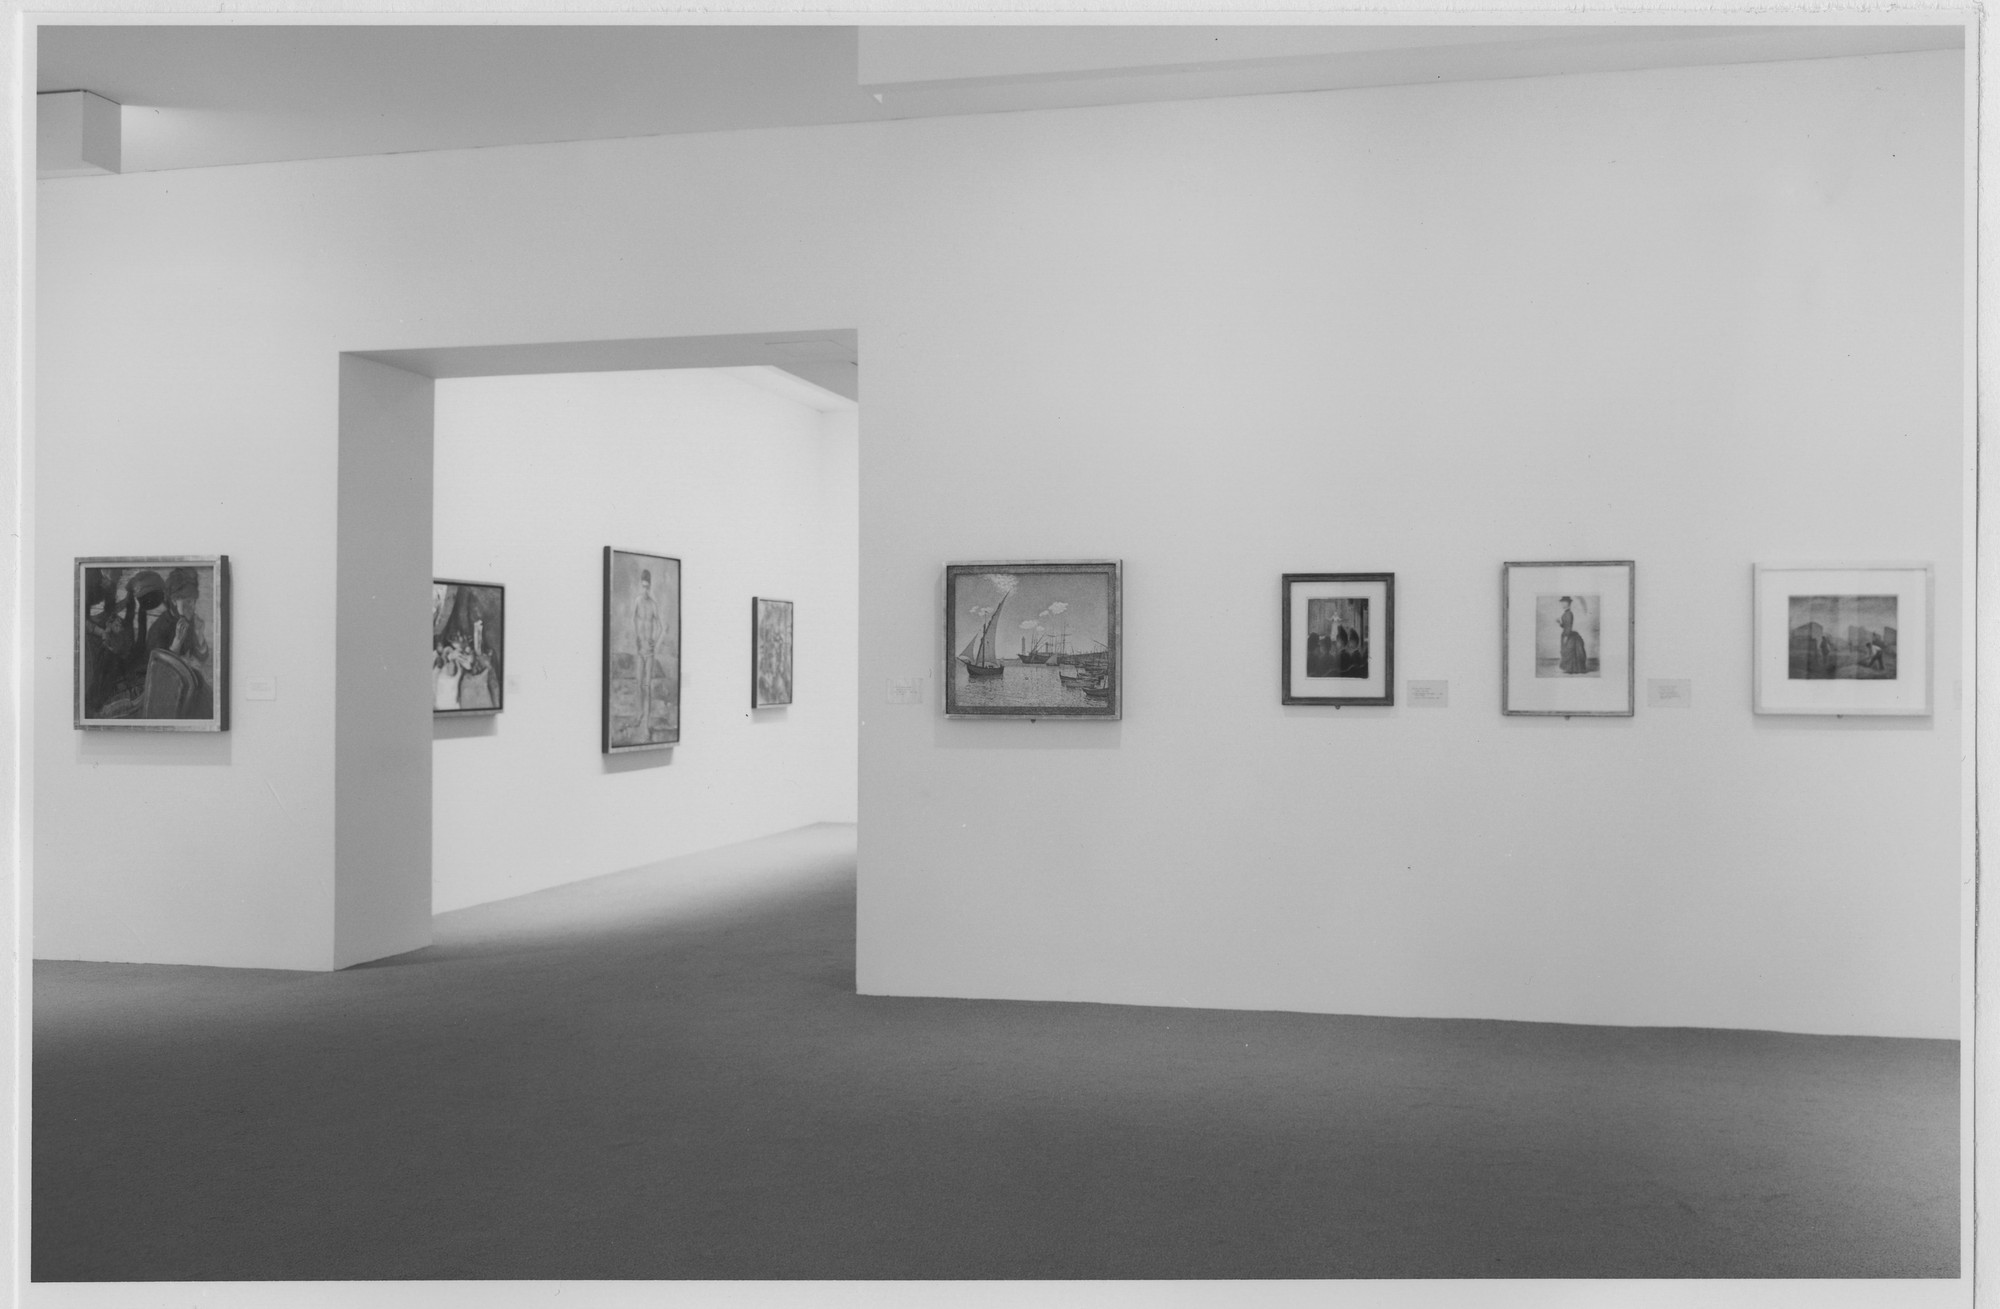 "Installation view of the exhibition, ""Selections from the Permanent Collection, Painting and Sculpture"" May 17, 1984 [unknown closing date]. Photographic Archive. The Museum of Modern Art Archives, New York. IN1372.1. Photograph by Katherine Keller."